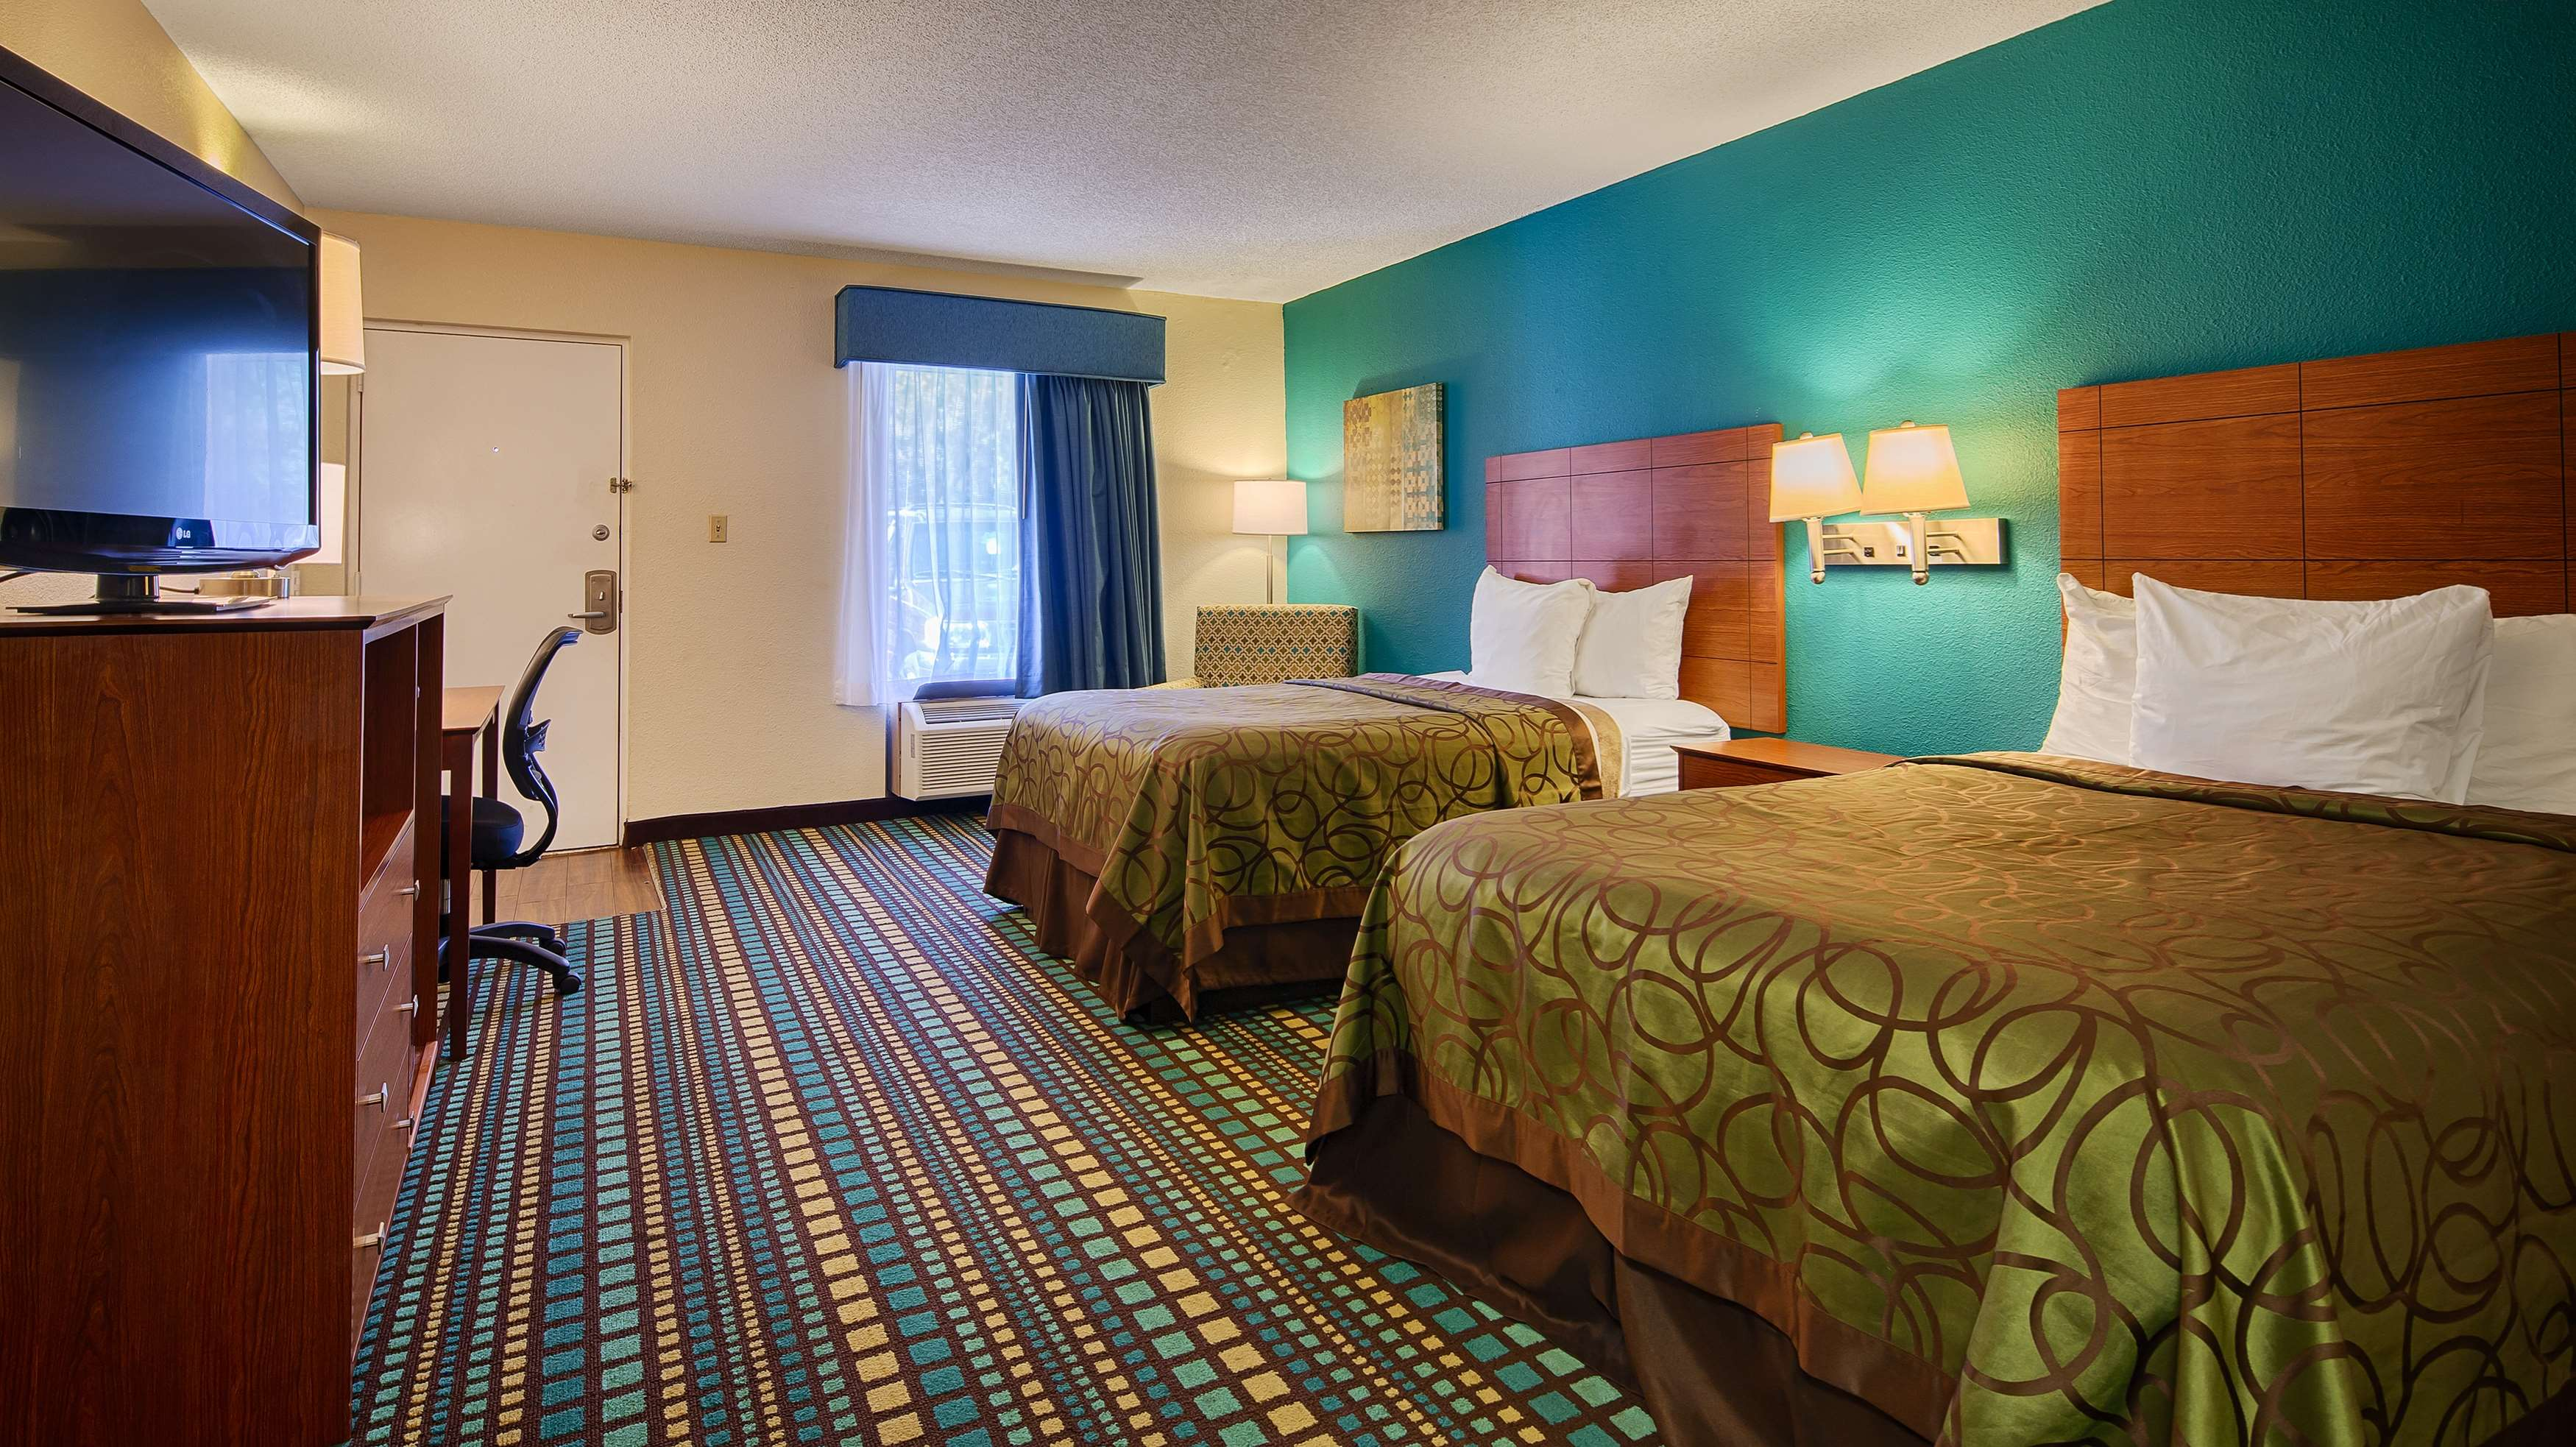 Best Western Tallahassee-Downtown Inn & Suites image 16